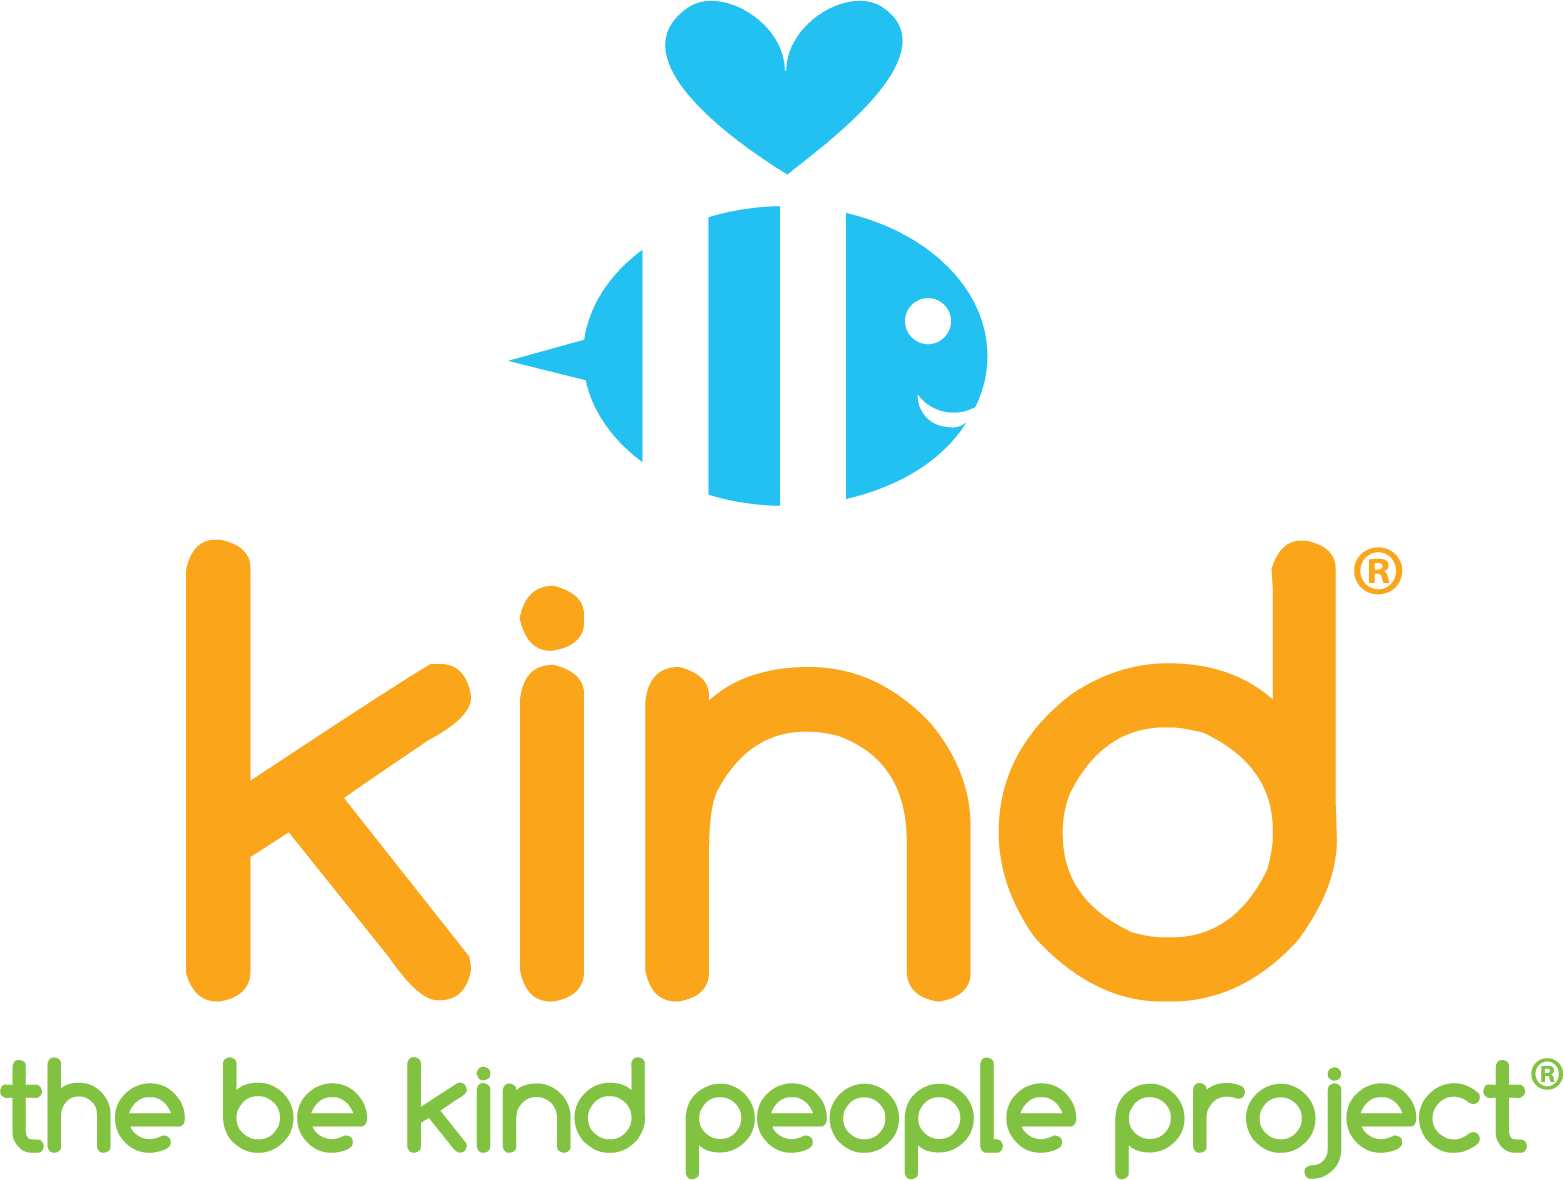 Take The Be Kind Pledge